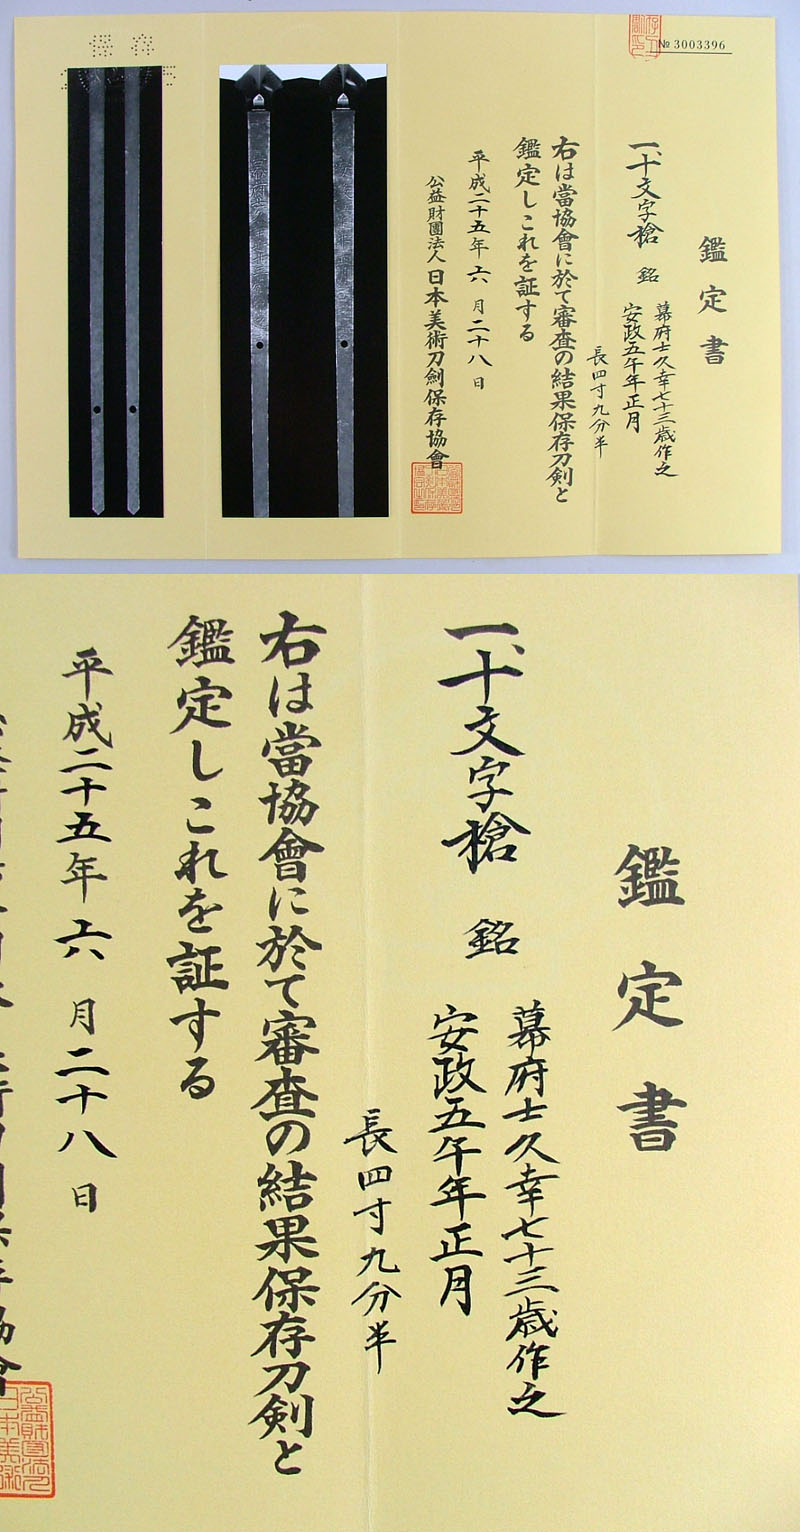 十文字槍 幕府士久幸七十三歳作之 Picture of Certificate